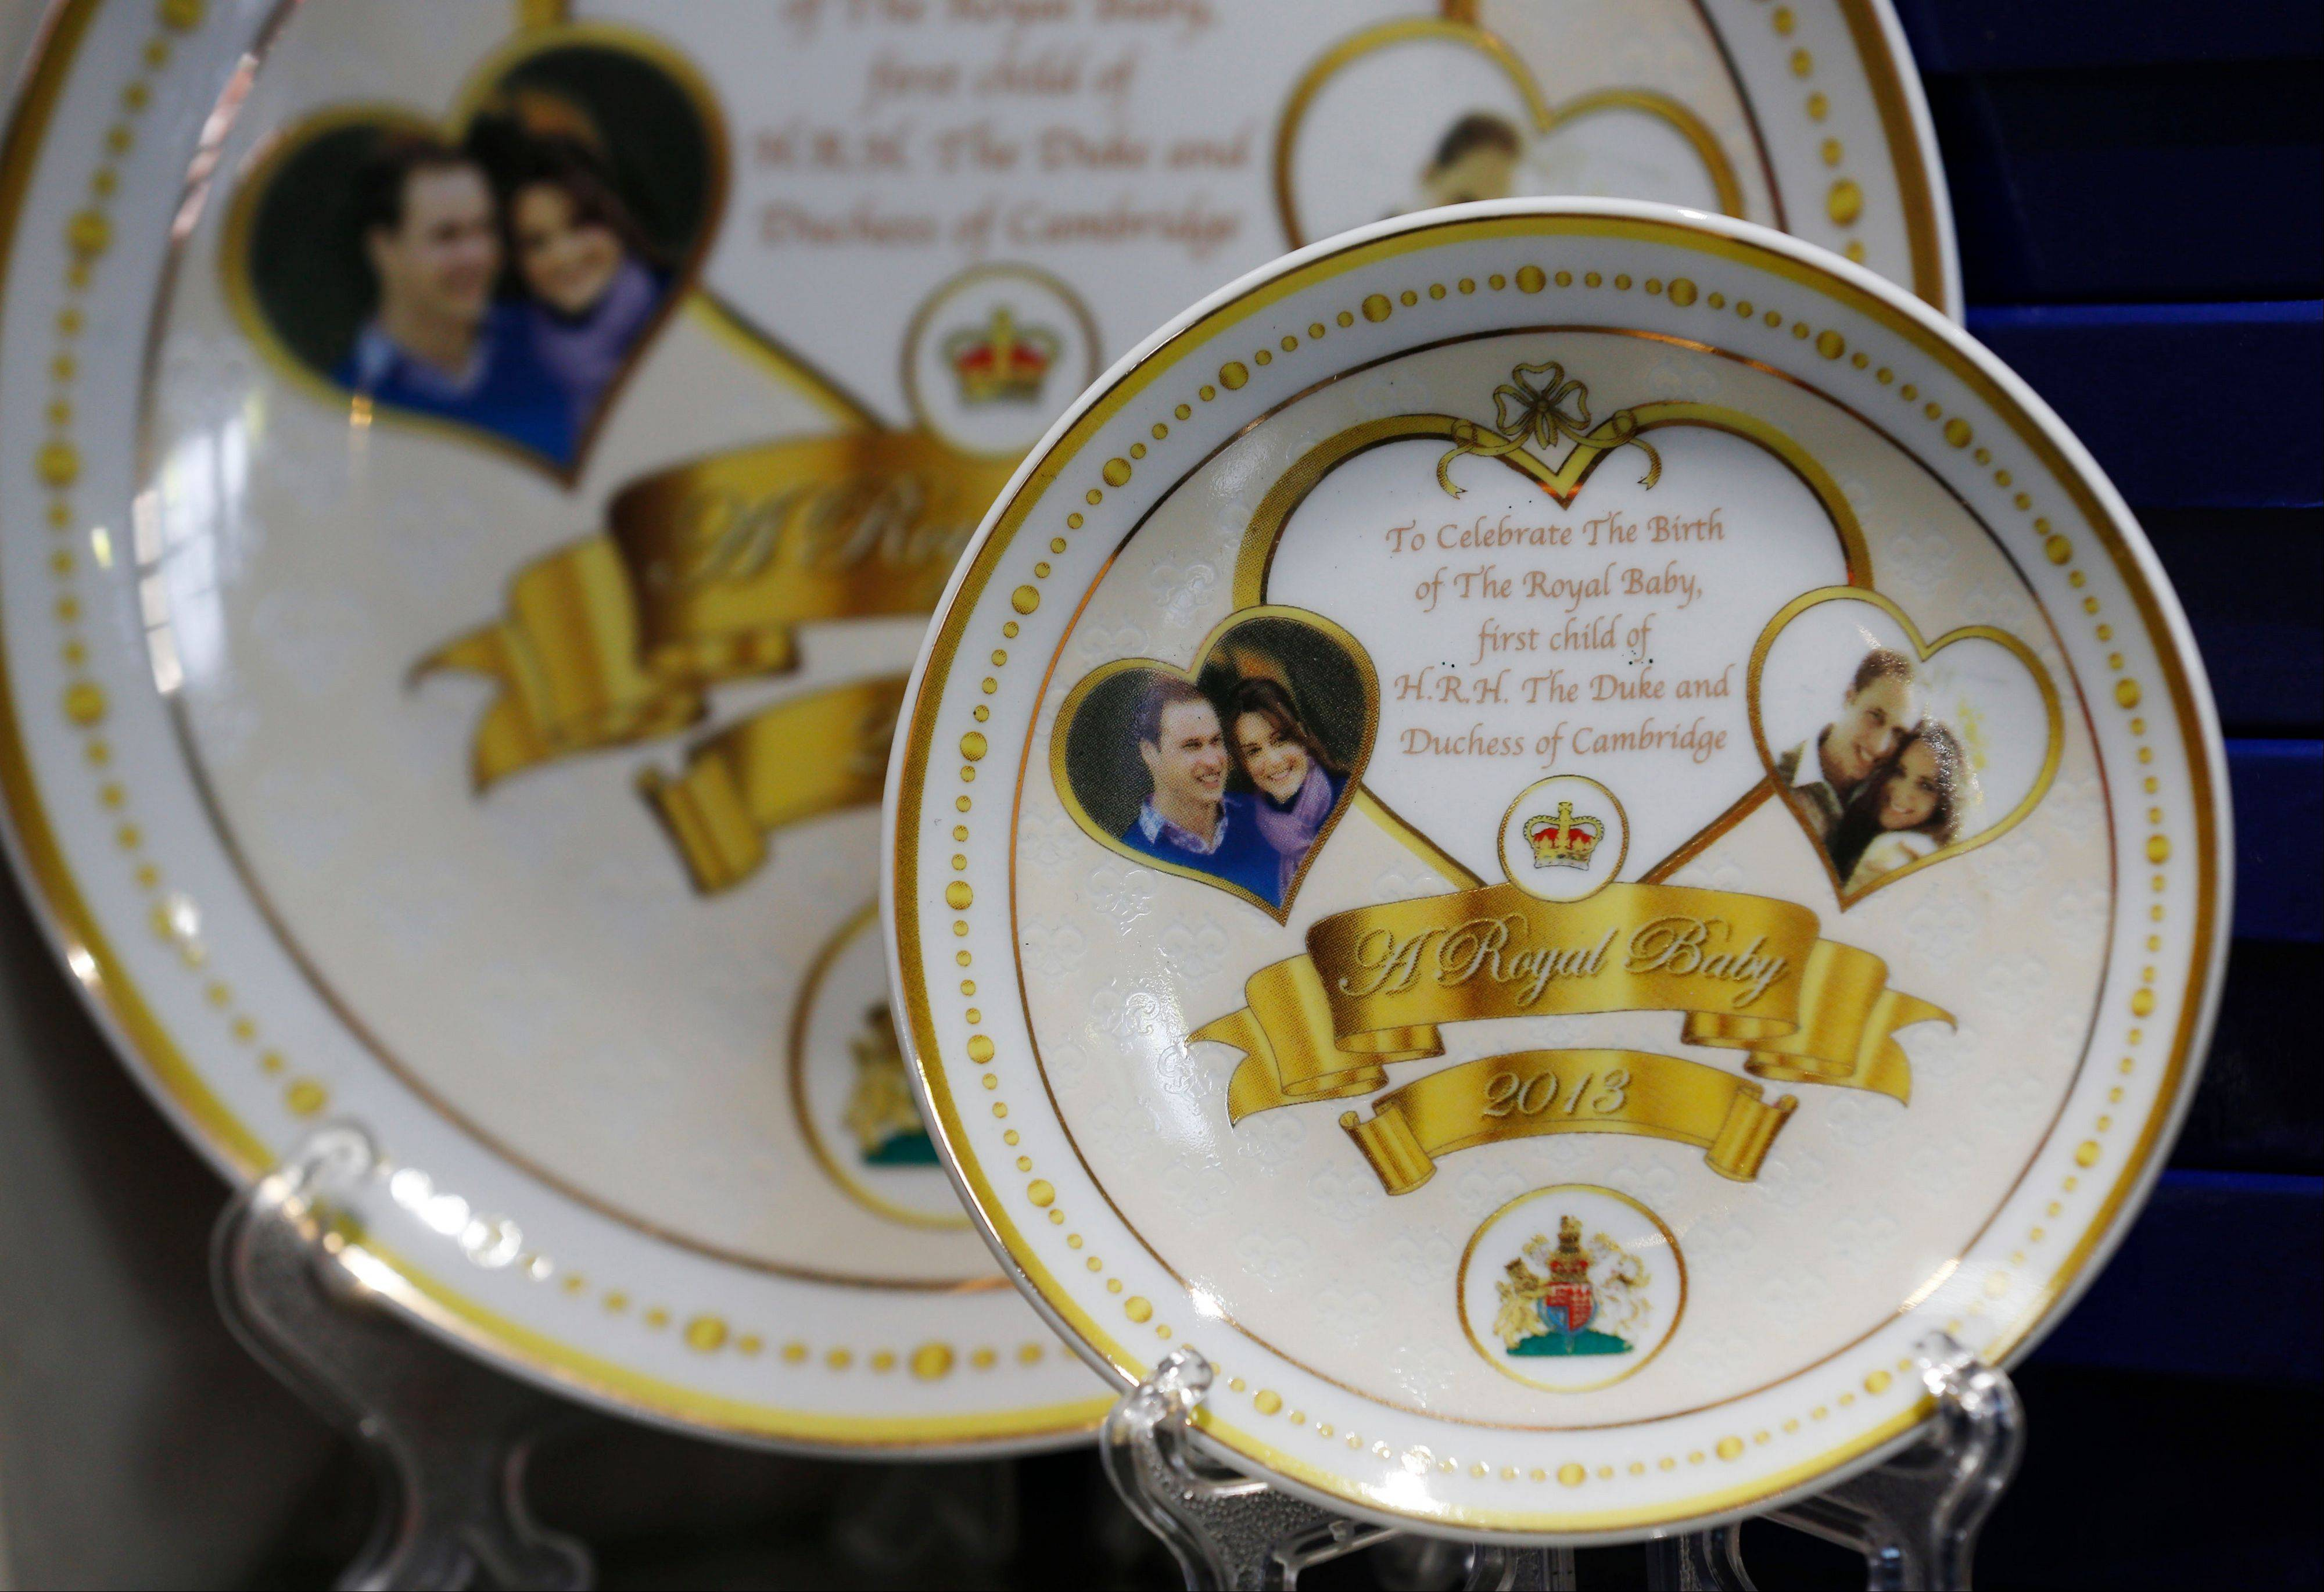 Souvenir plates to mark the forthcoming birth of Prince William and Kate, Duchess of Cambridge�s baby are seen on display in a souvenir shop in central London, Wednesday, July 10, 2013.